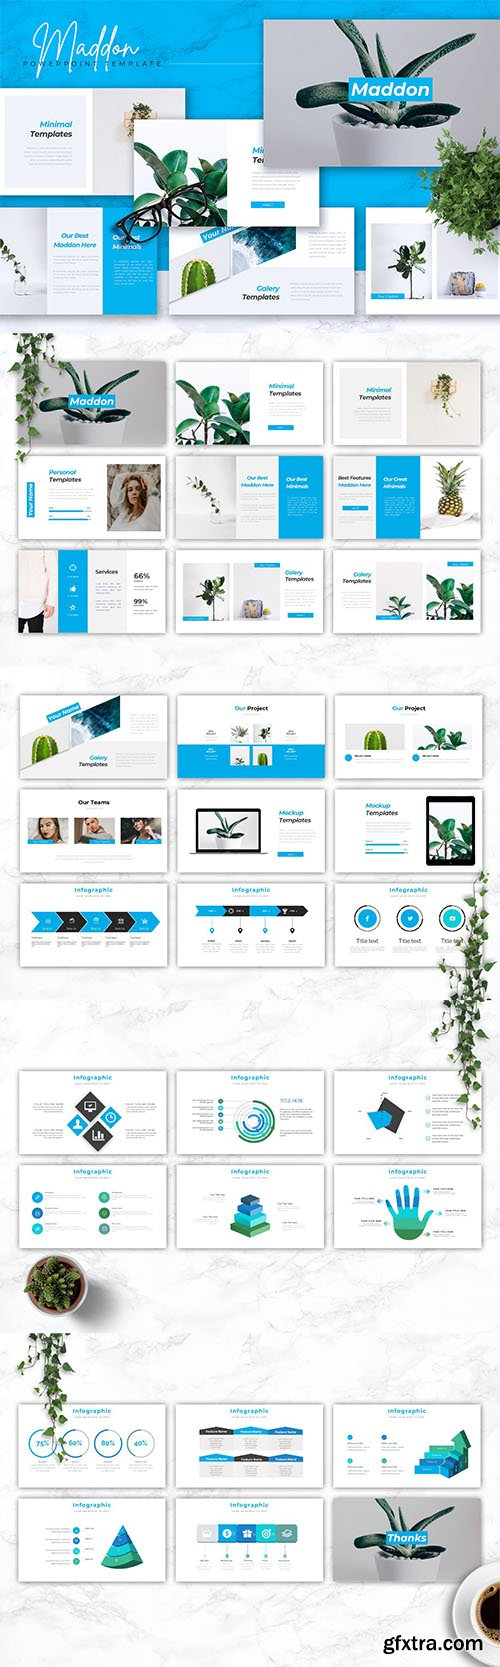 MADDON - Company Profile Powerpoint, Keynote and Google Slides Templates